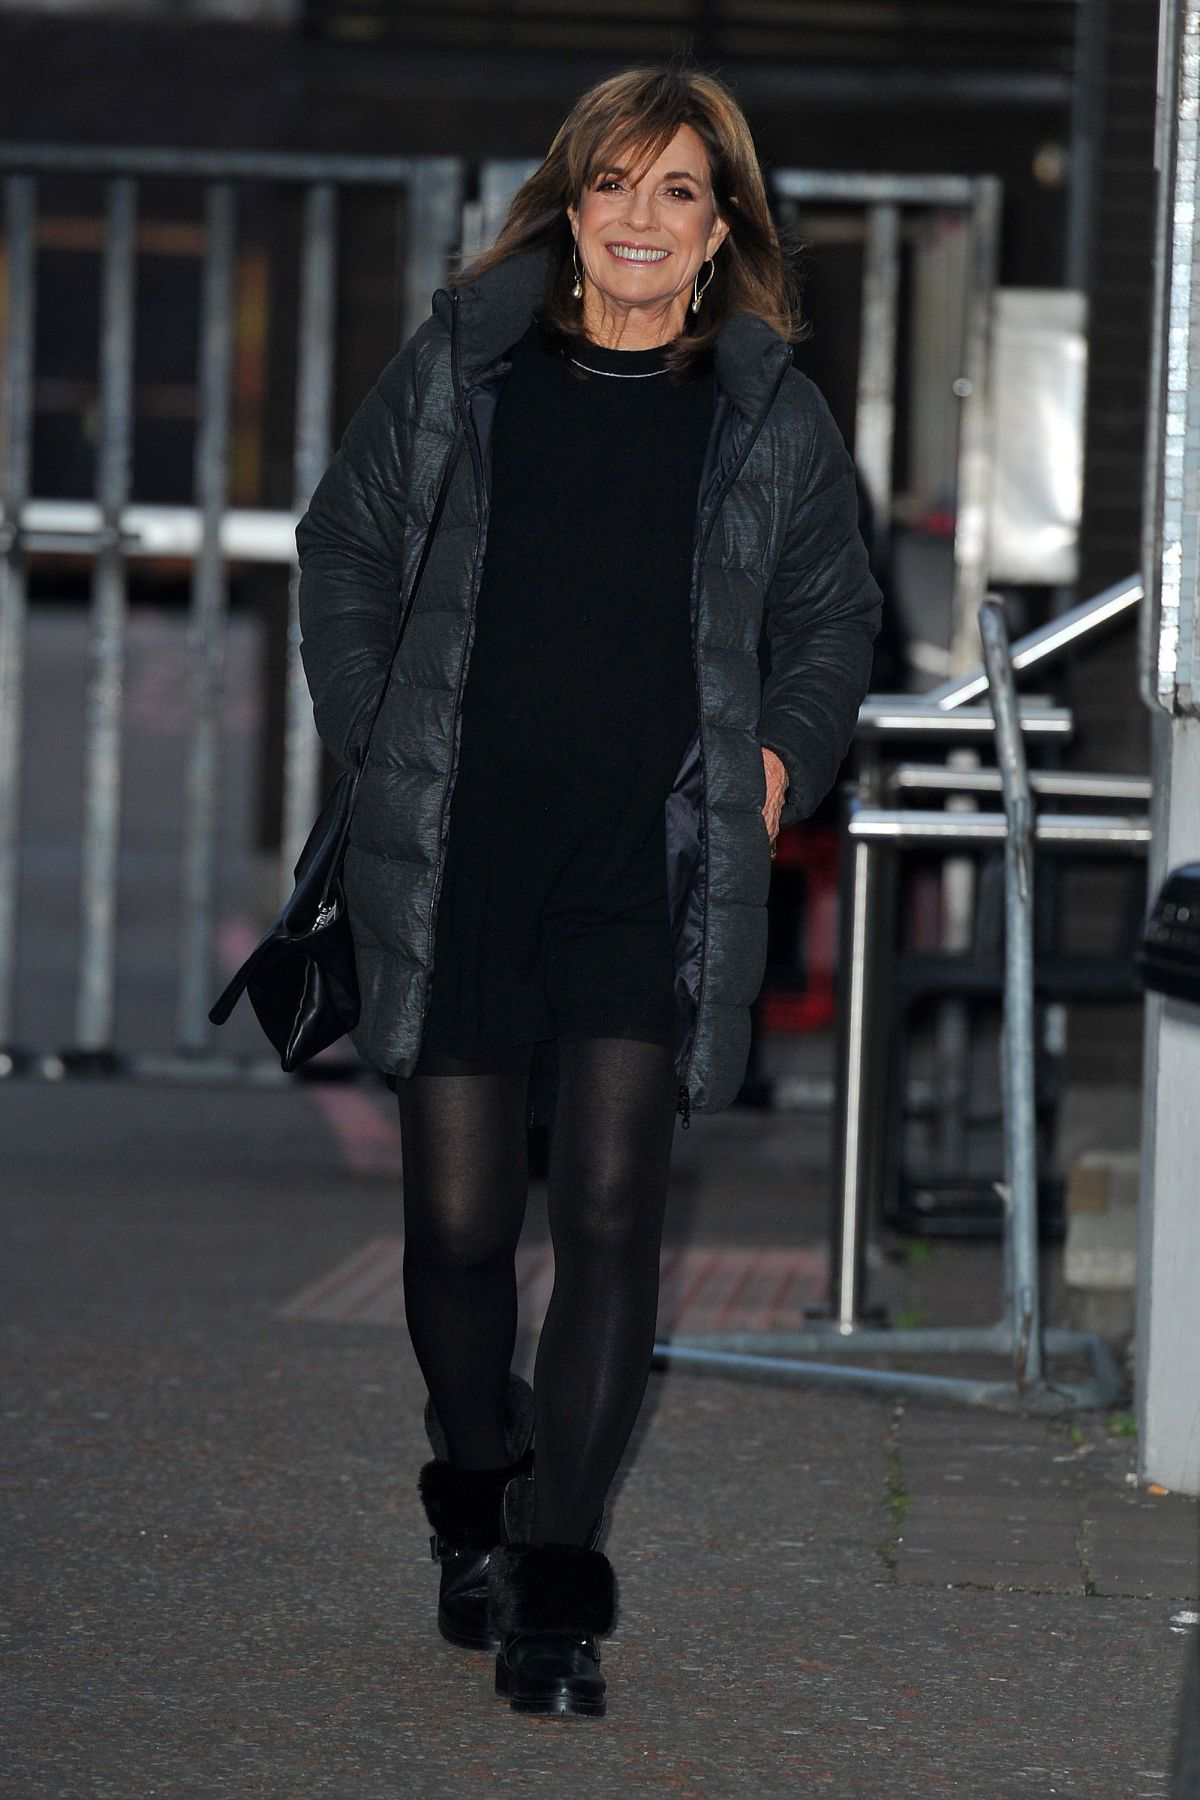 LINDA GRAY at ITV Studios in London 01/12/2017